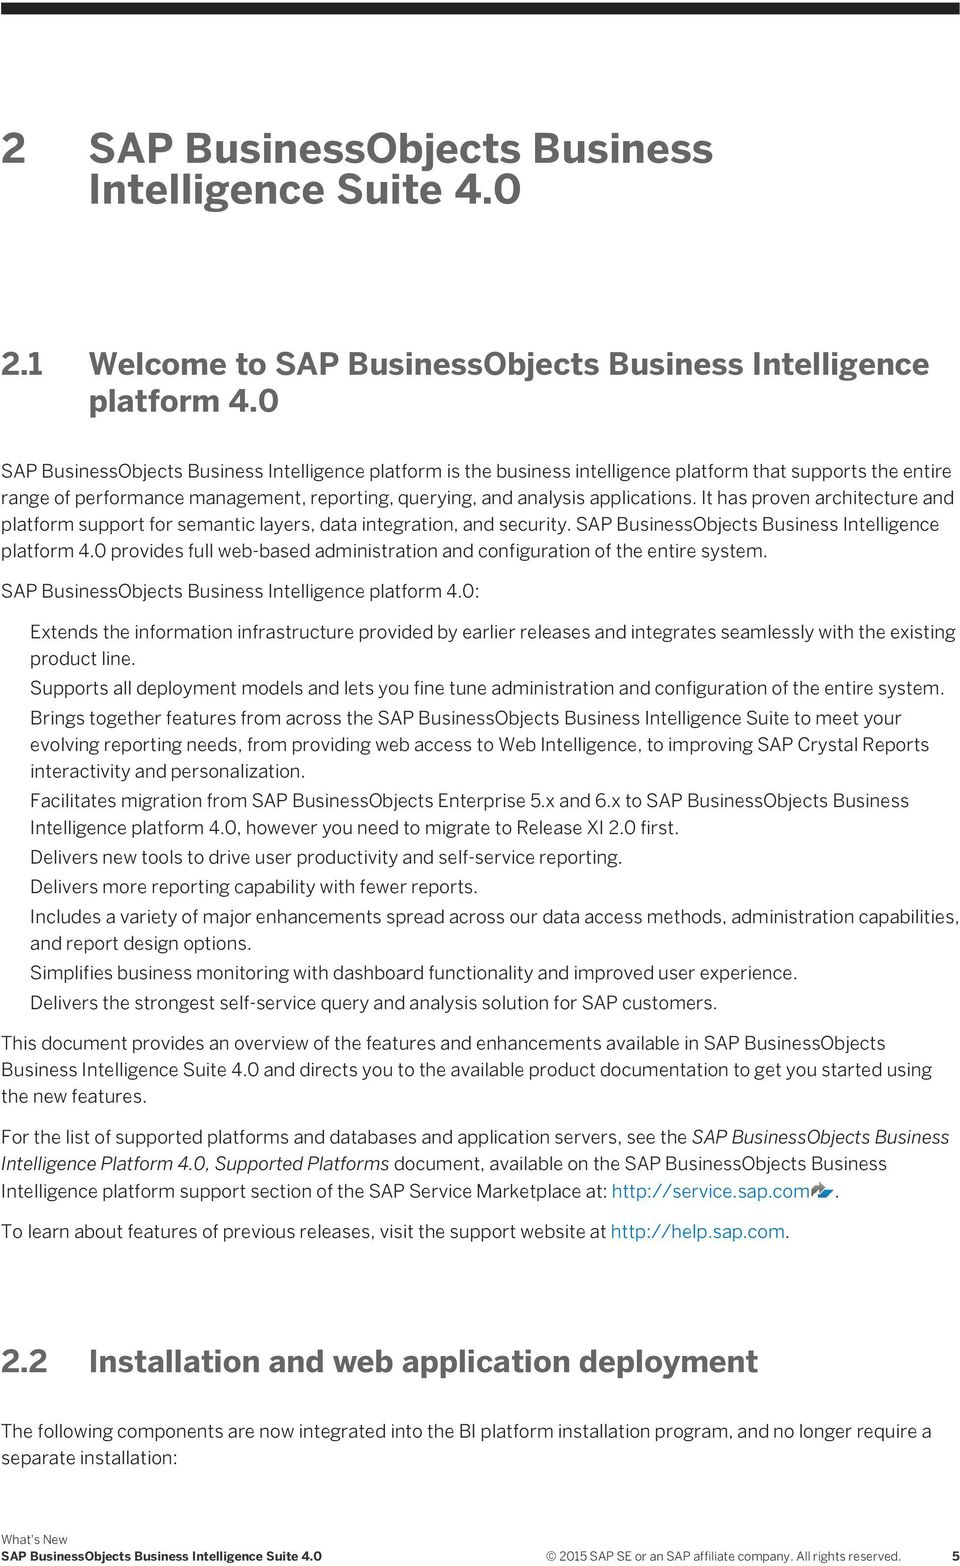 It has proven architecture and platform support for semantic layers, data integration, and security. SAP BusinessObjects Business Intelligence platform 4.